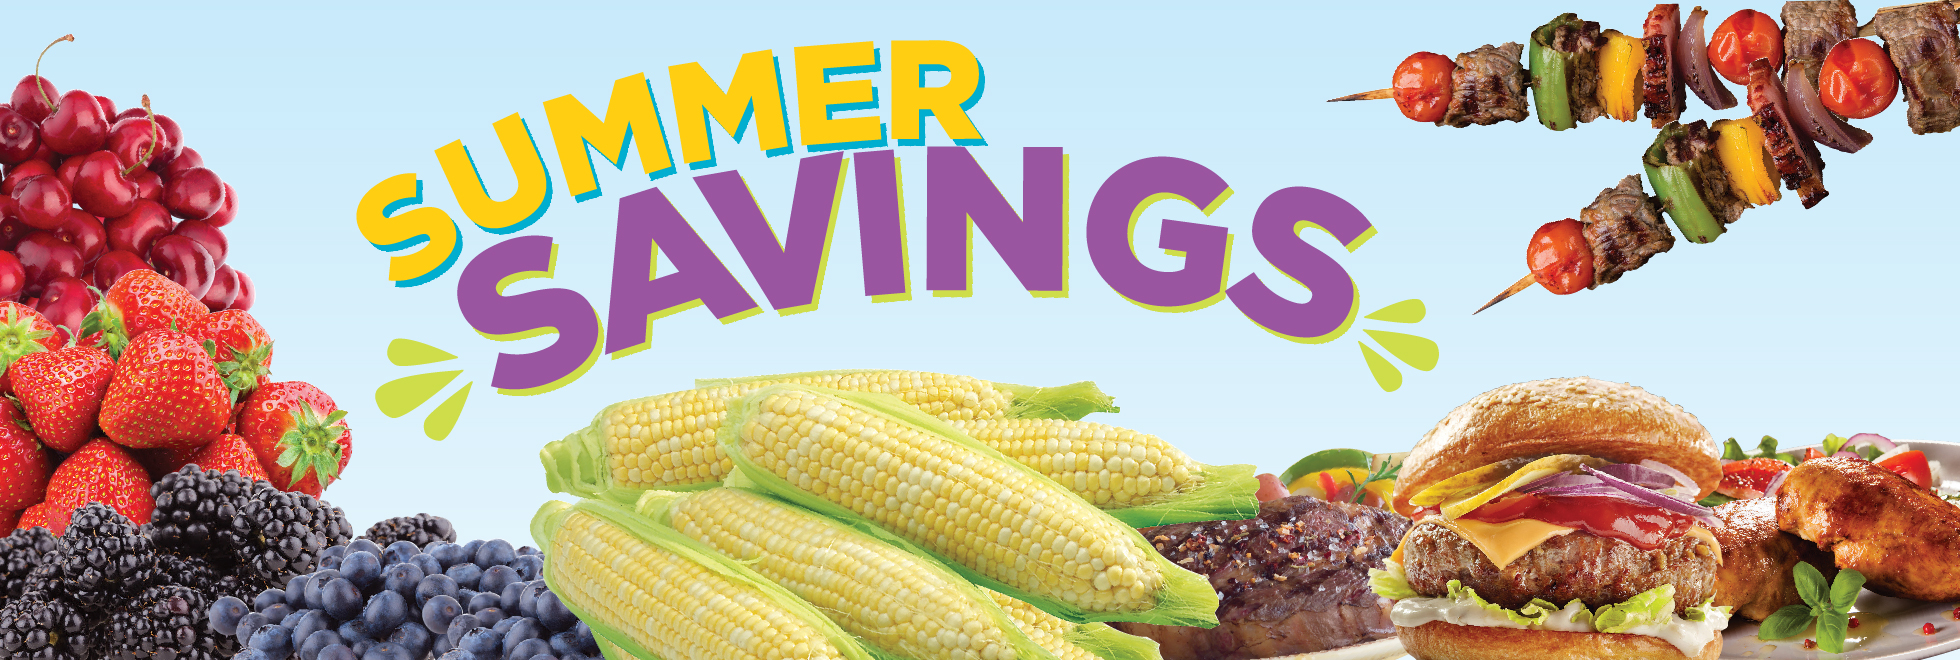 Top Summer Savings